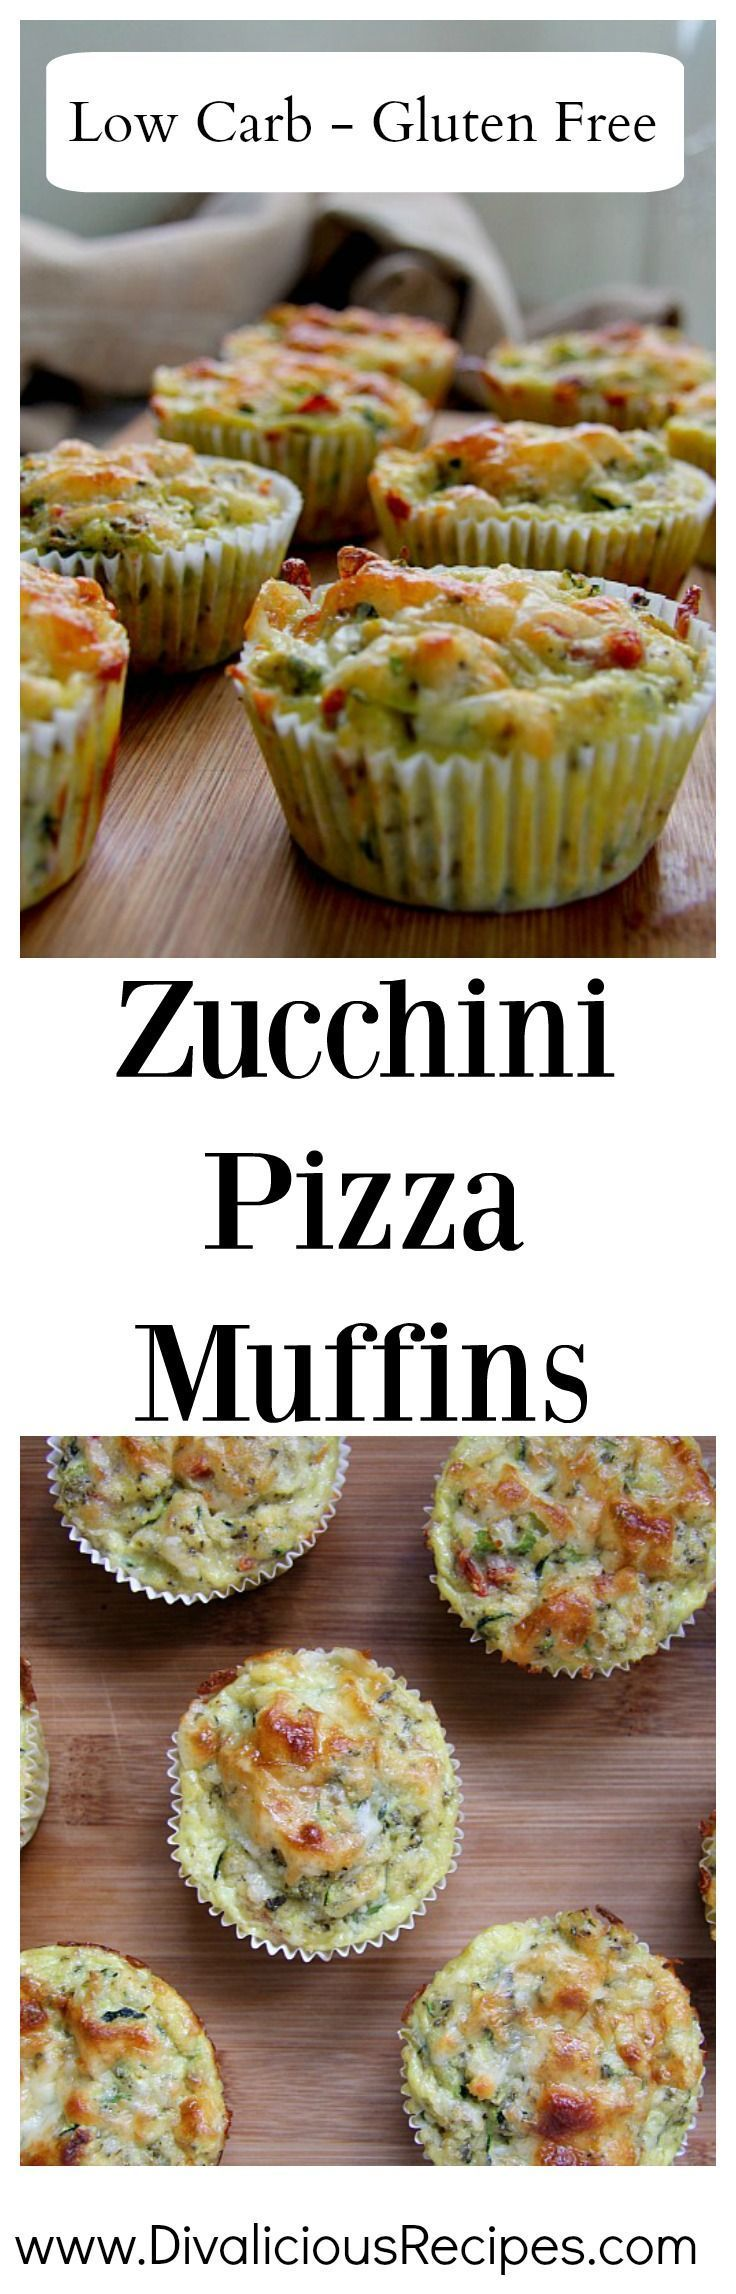 Zucchini pizza muffins baked with coconut flour and flavoured as you would a pizza. A light taste of pizza in savoury muffin form.